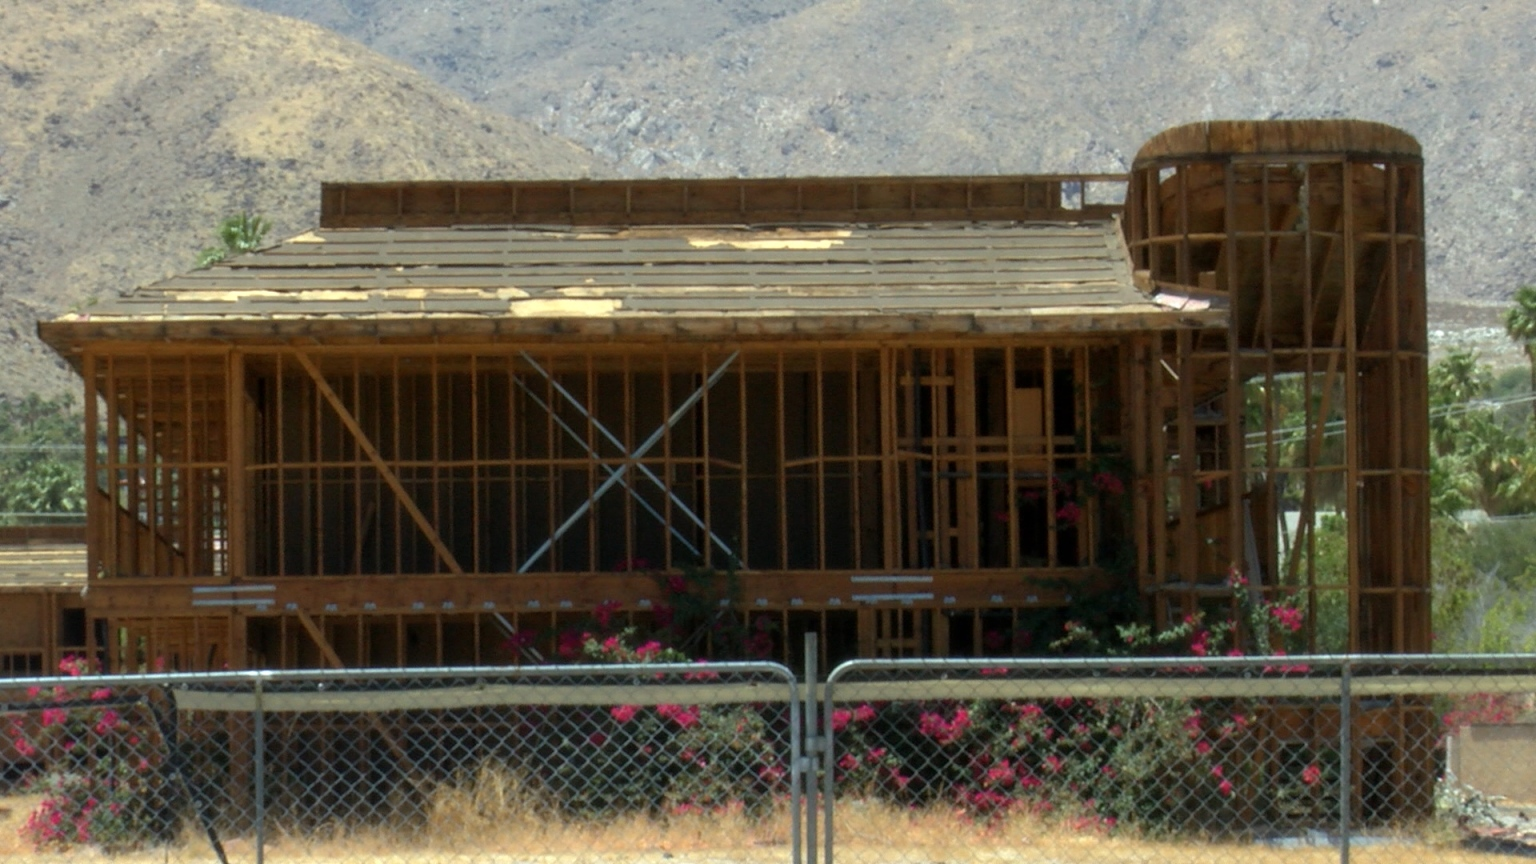 City Officials Move Forward With Palm Springs Hotel Demolition